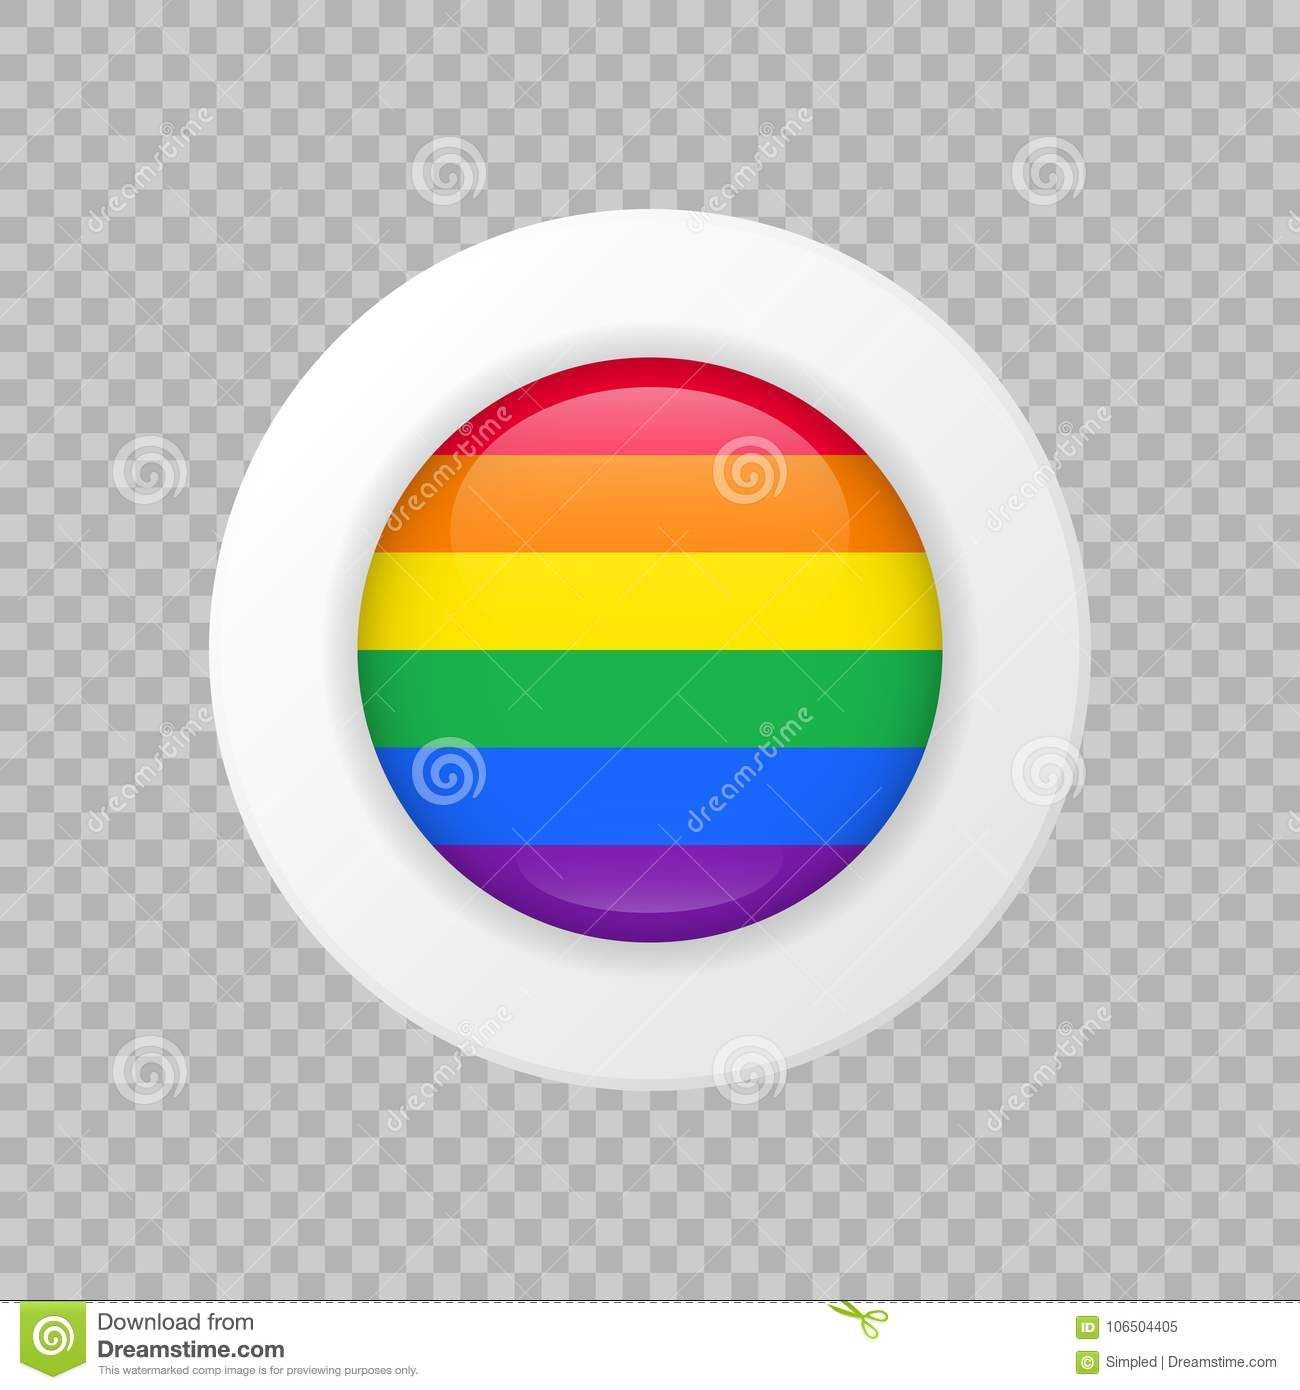 Vector LGBT flag sign on transparent background. rainbow circle symbol. Glossy icon